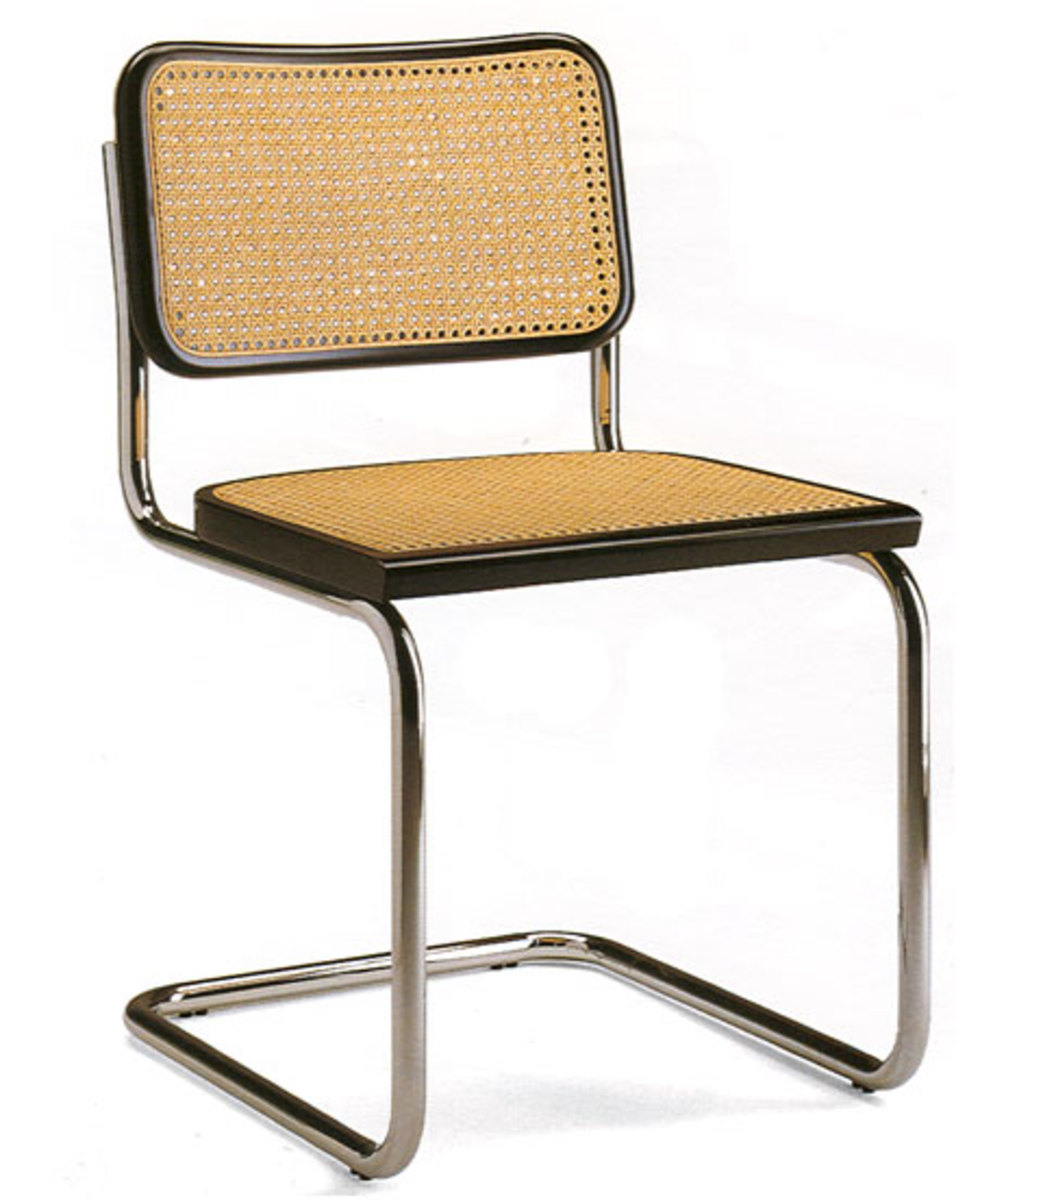 Marcel Breuer Cane Chair & Tubular Steel